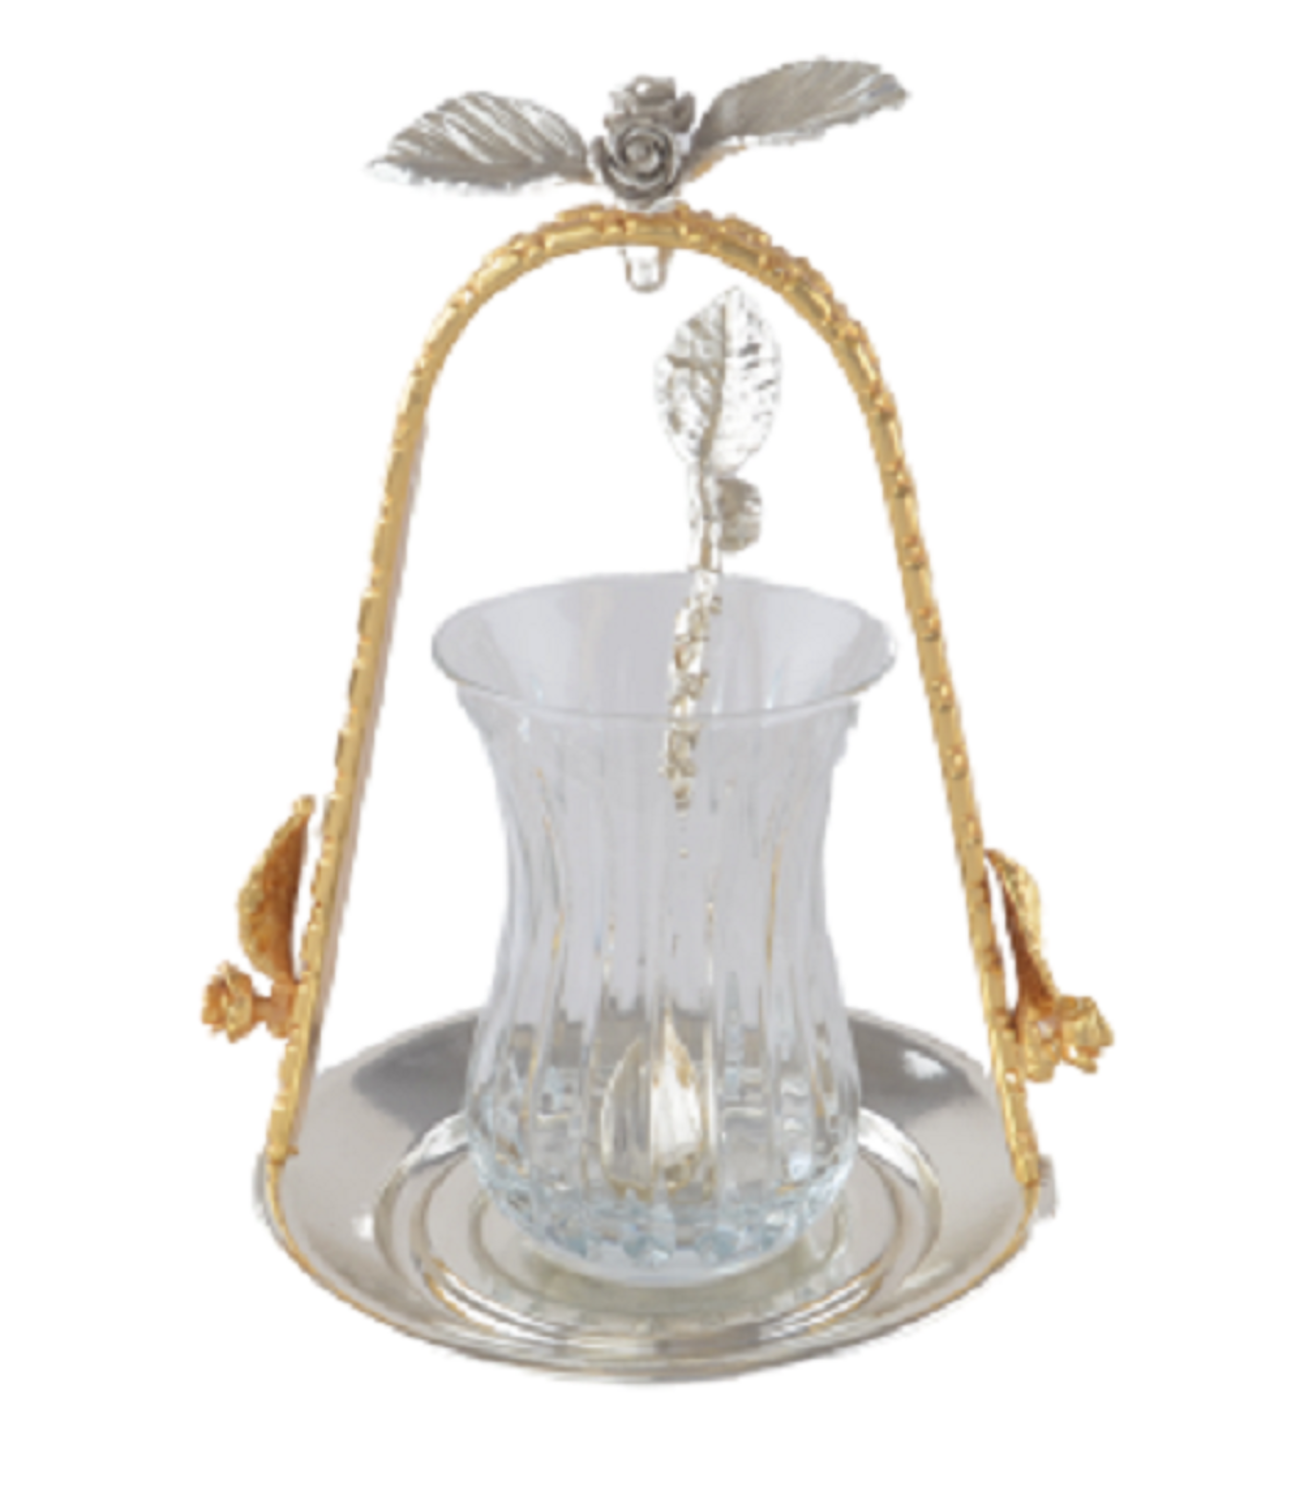 MEVLANA TEA CUP WITH SILVER-GOLD HANGED TEA PLATE resmi